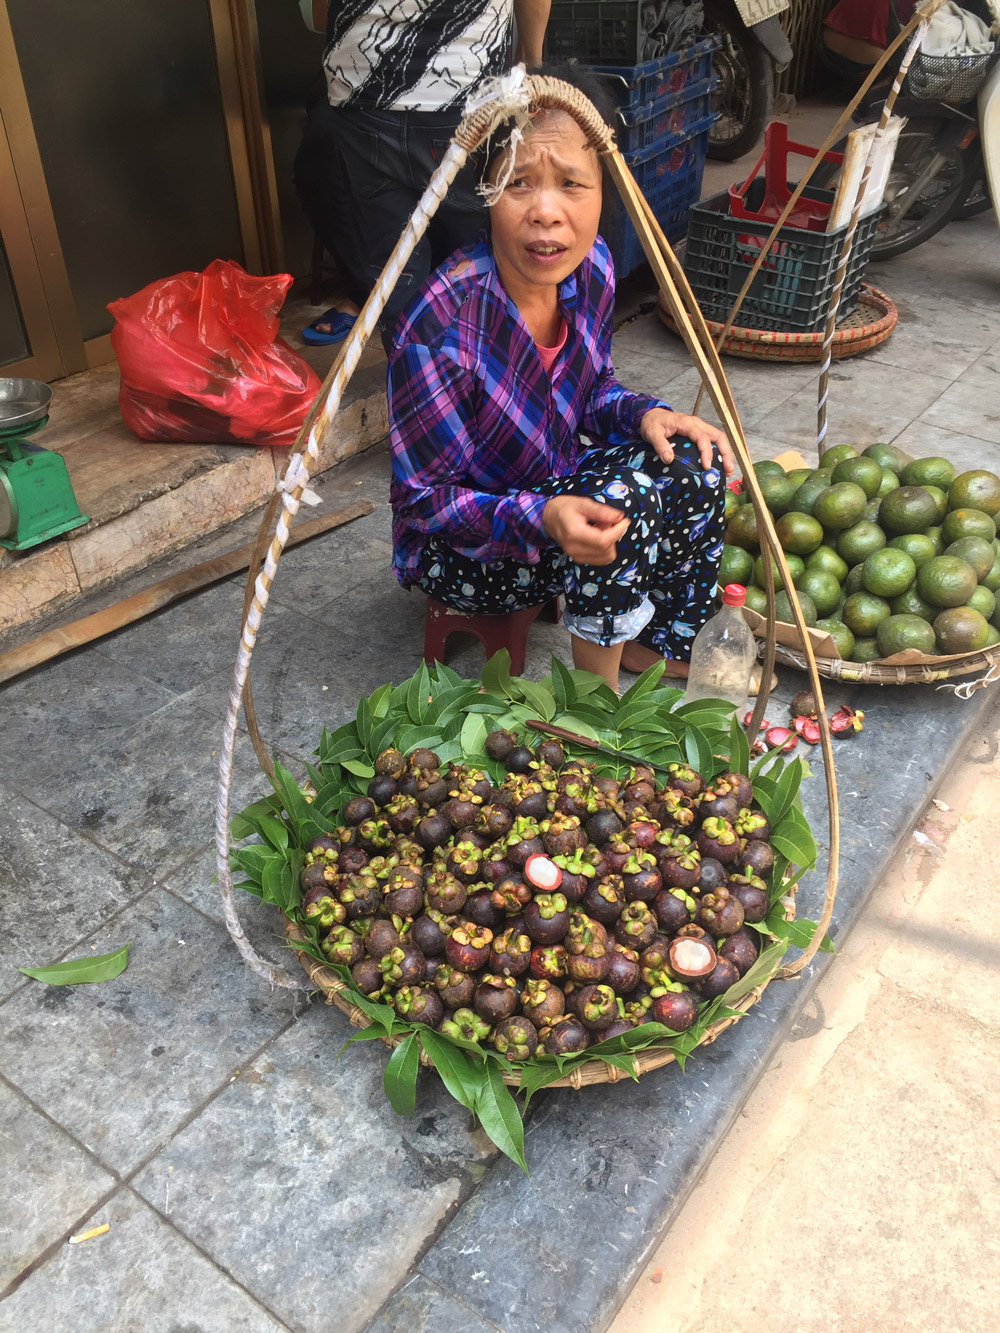 Mangosteen seller on the streets of Hanoi, Vietnam - Kristen Remeza